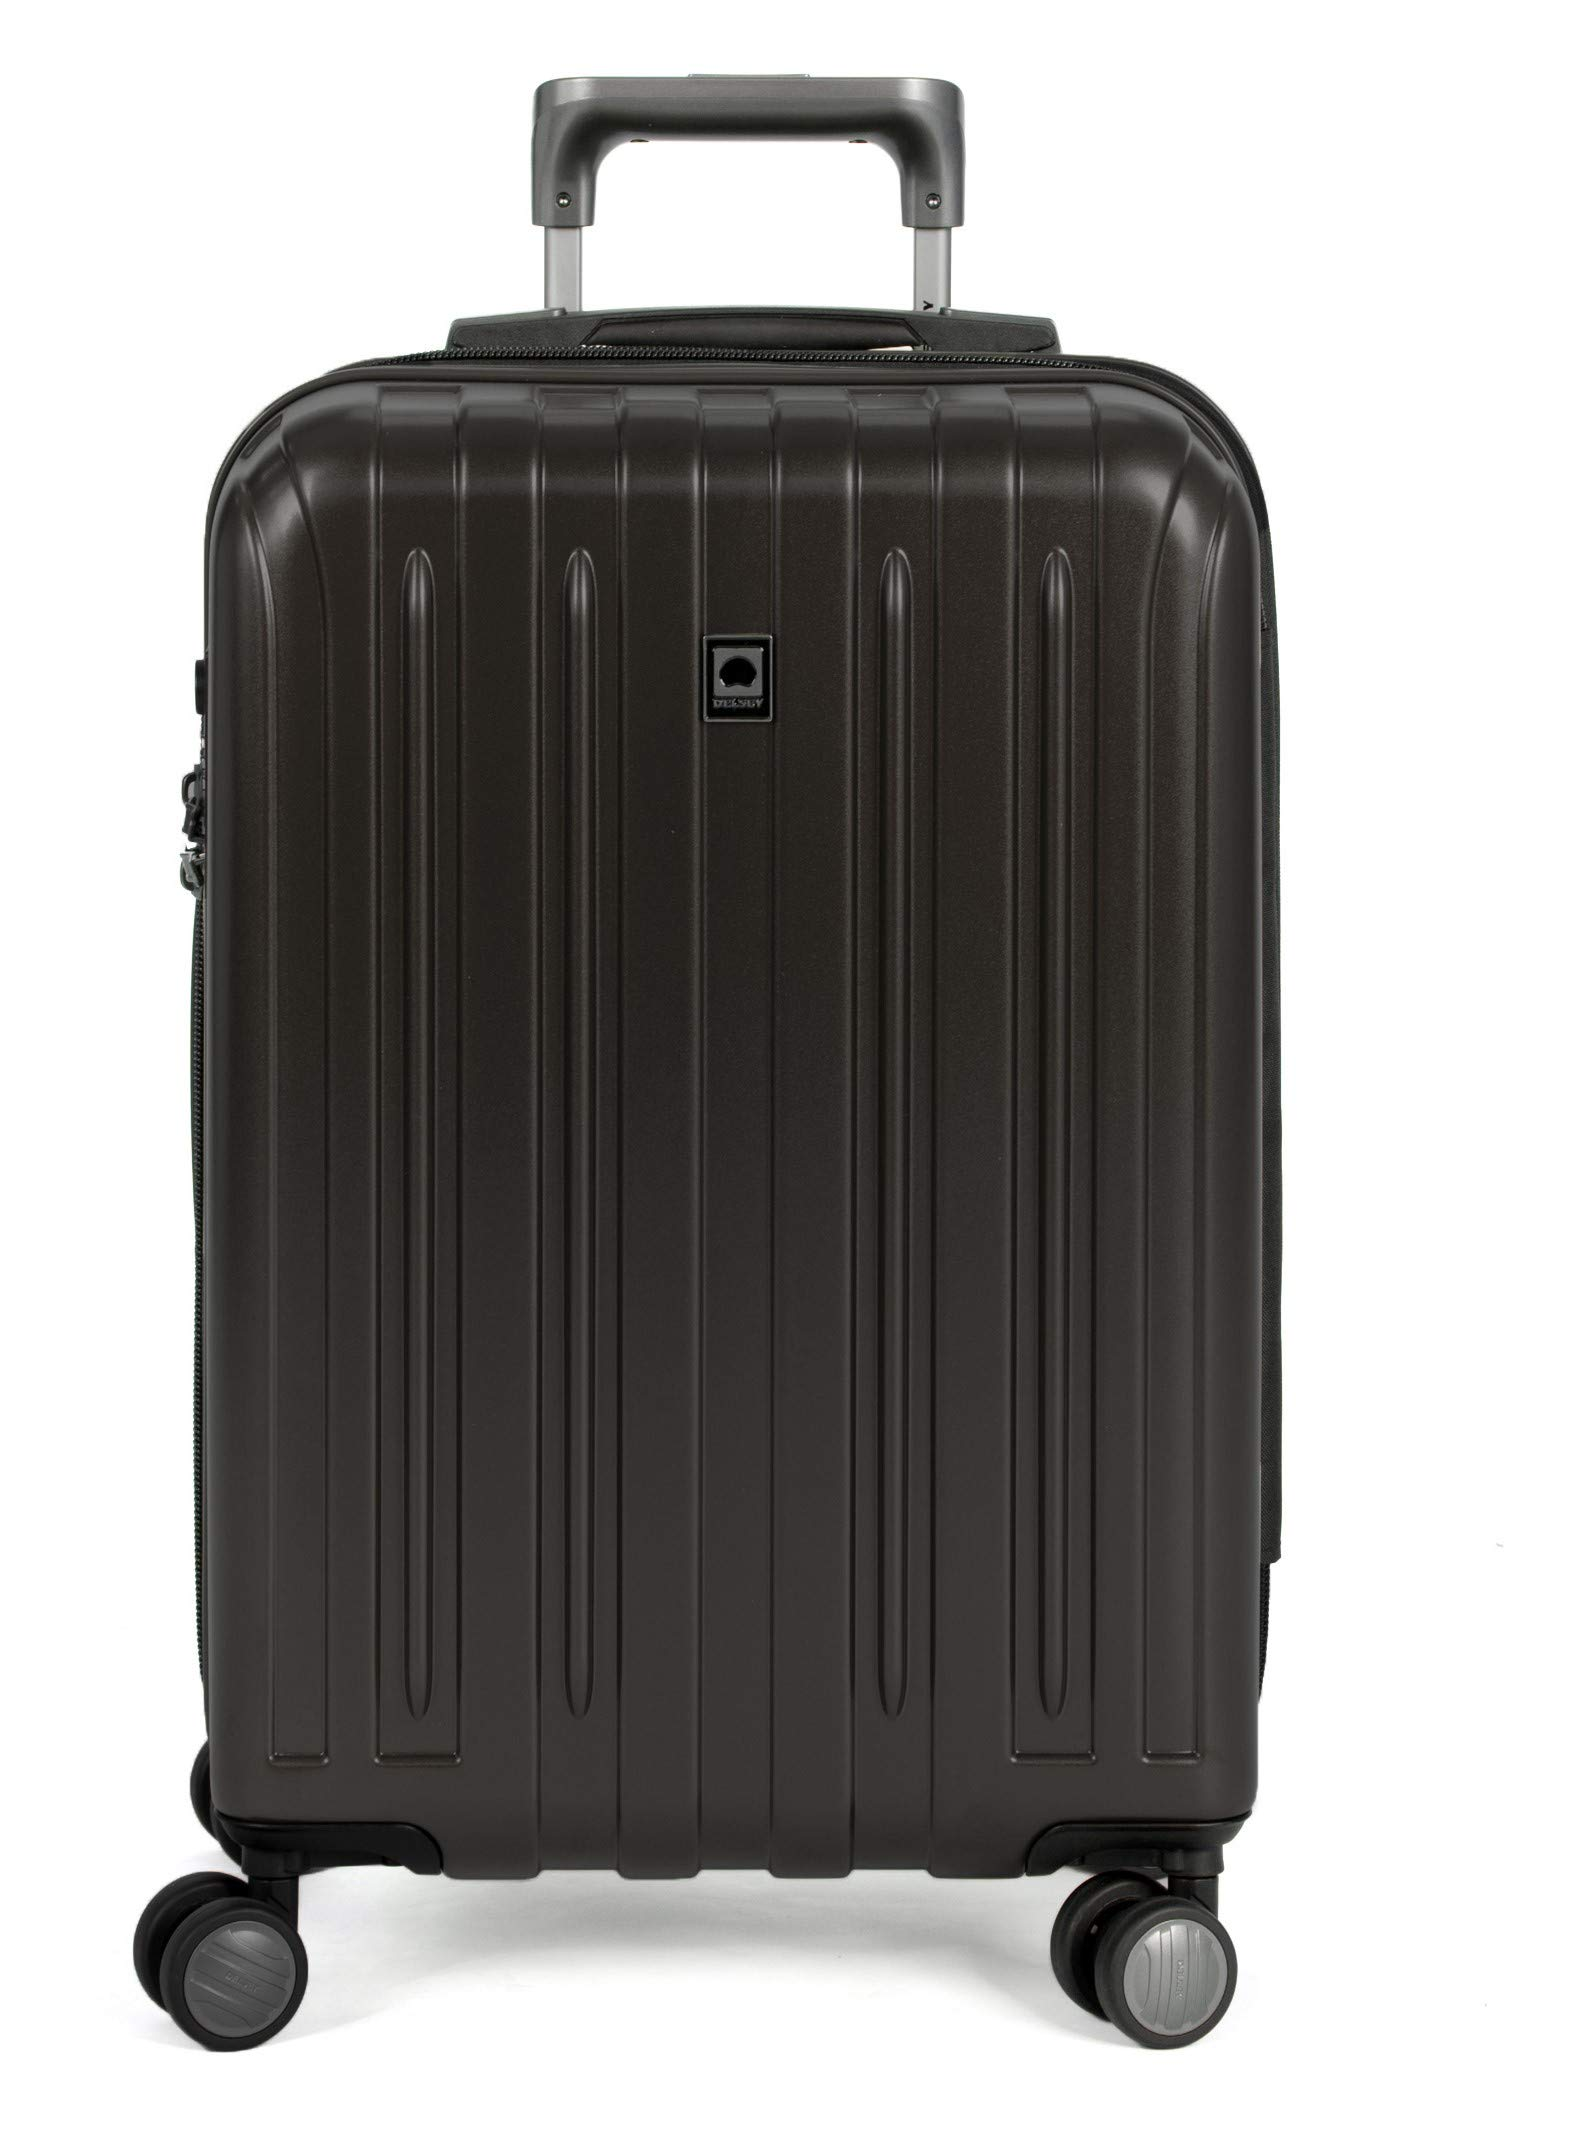 DELSEY Paris Titanium Hardside Expandable Luggage with Spinner Wheels, Black, Carry-On 21 Inch